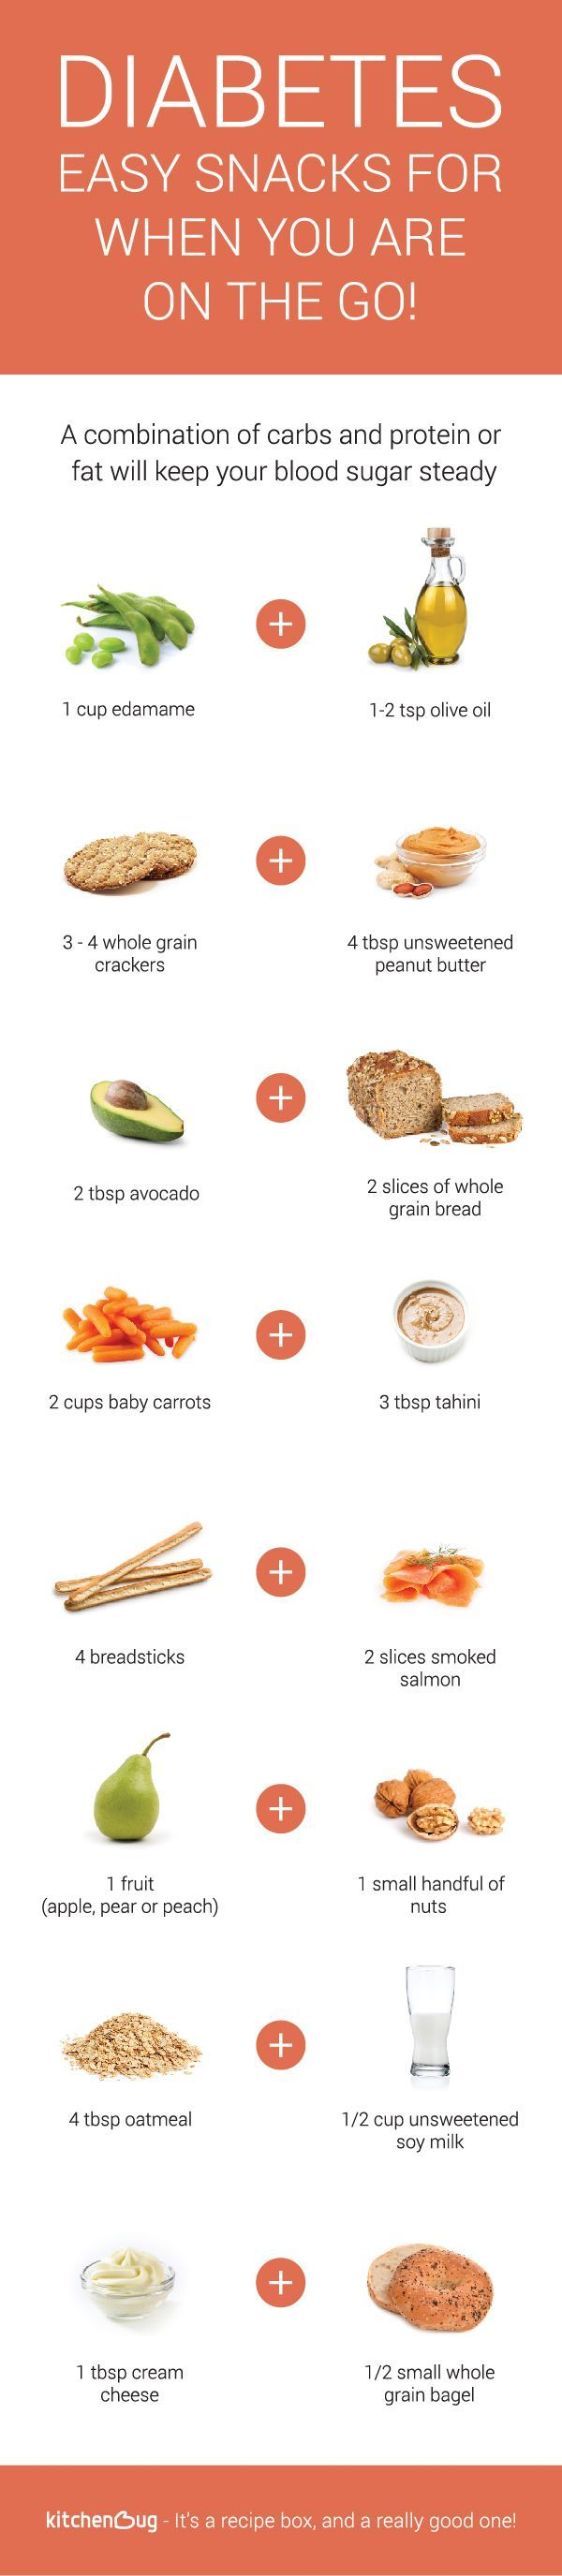 Simple Snacks For Diabetics Easy Combinations That Are